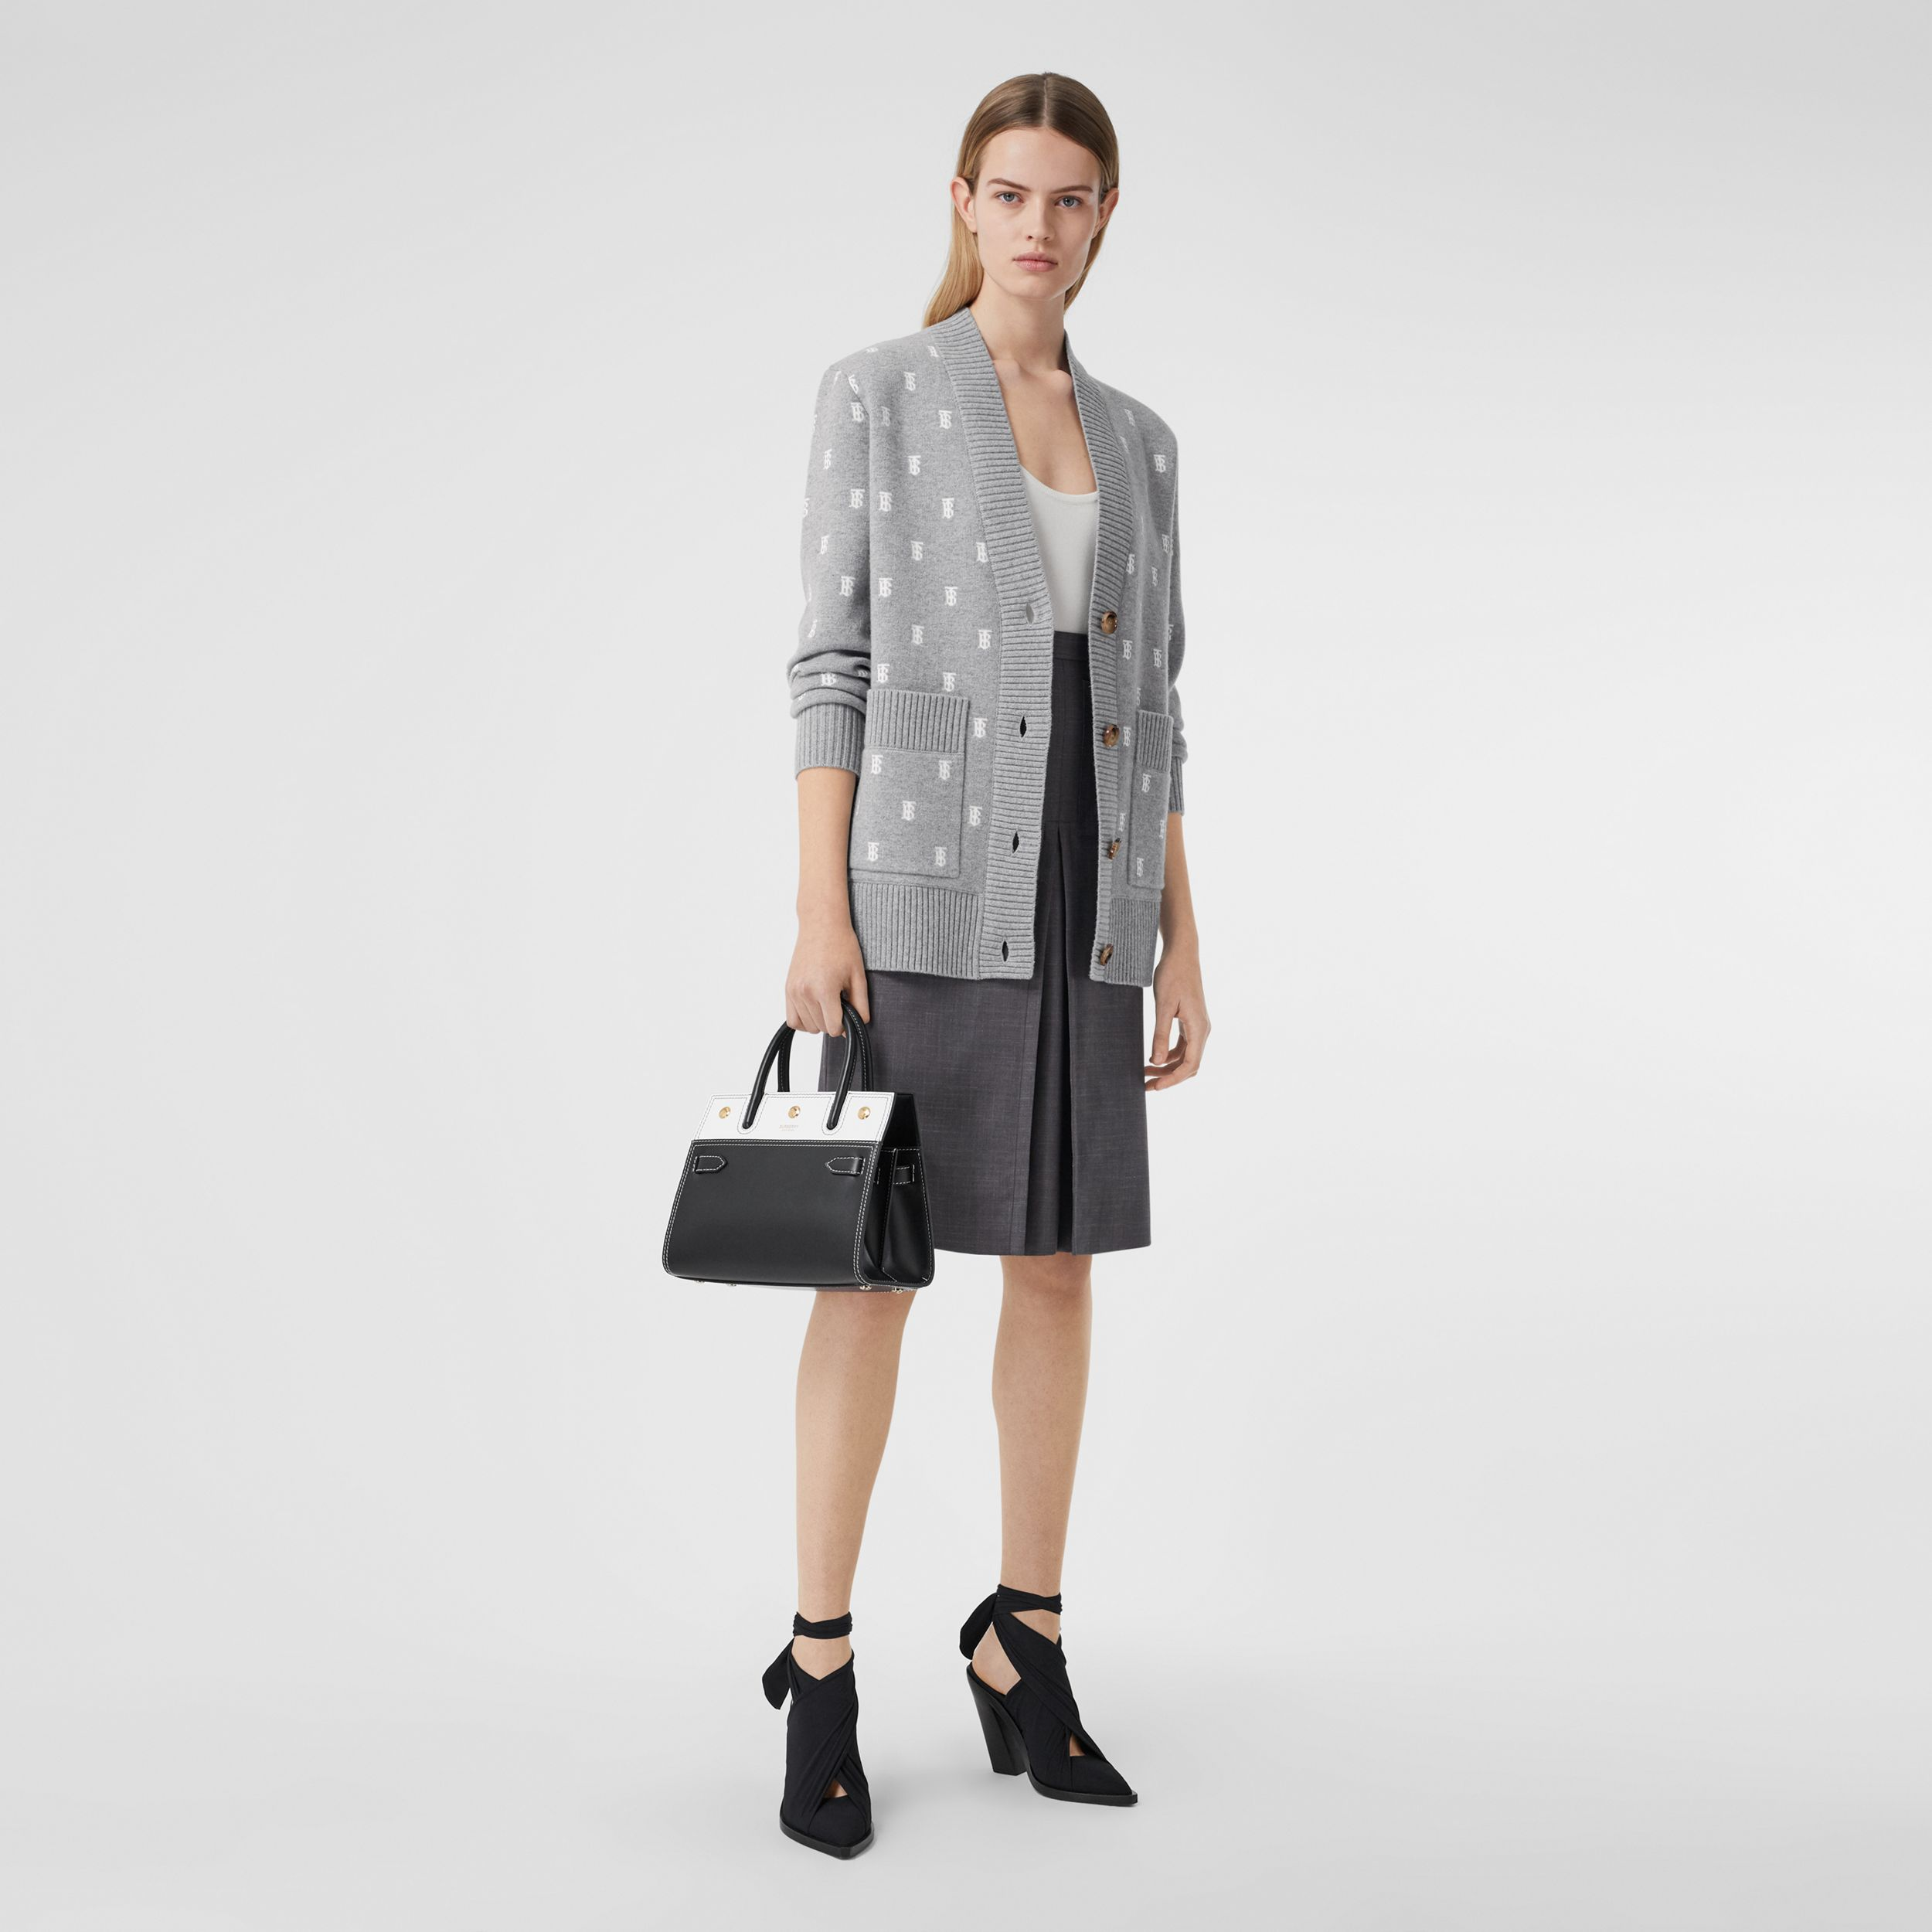 Monogram Wool Cashmere Blend Oversized Cardigan in Mid Grey Melange | Burberry - 1